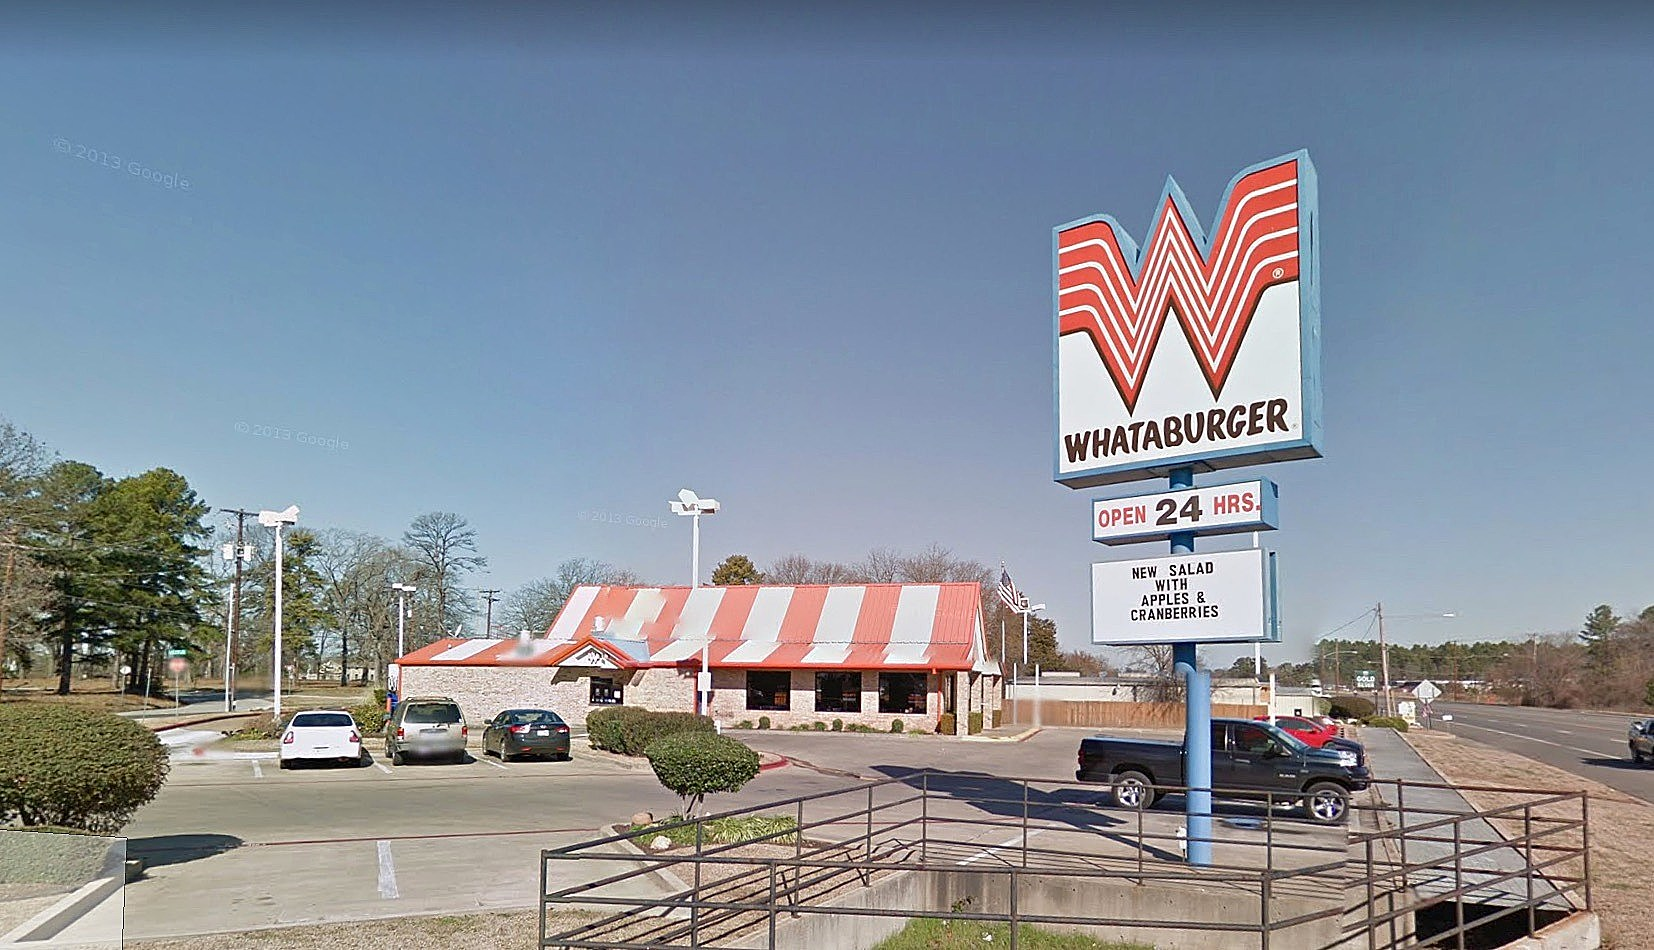 Whataburger Locations Supporting Relay for Life This Evening